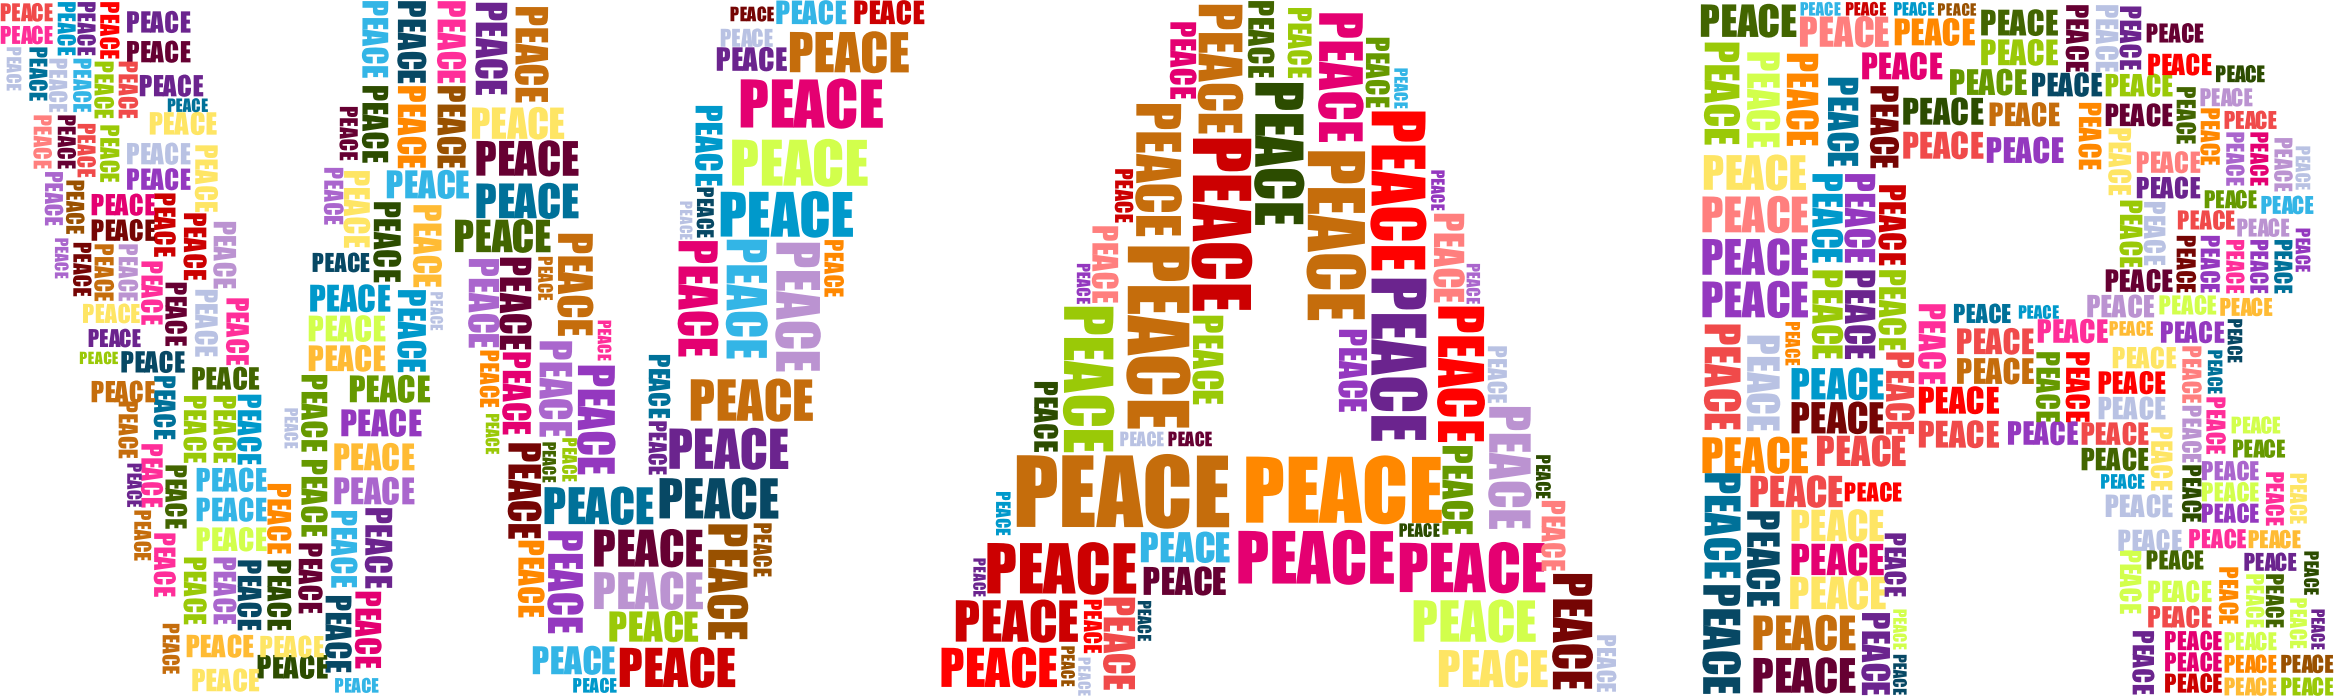 War and big image. Peace clipart word wisdom